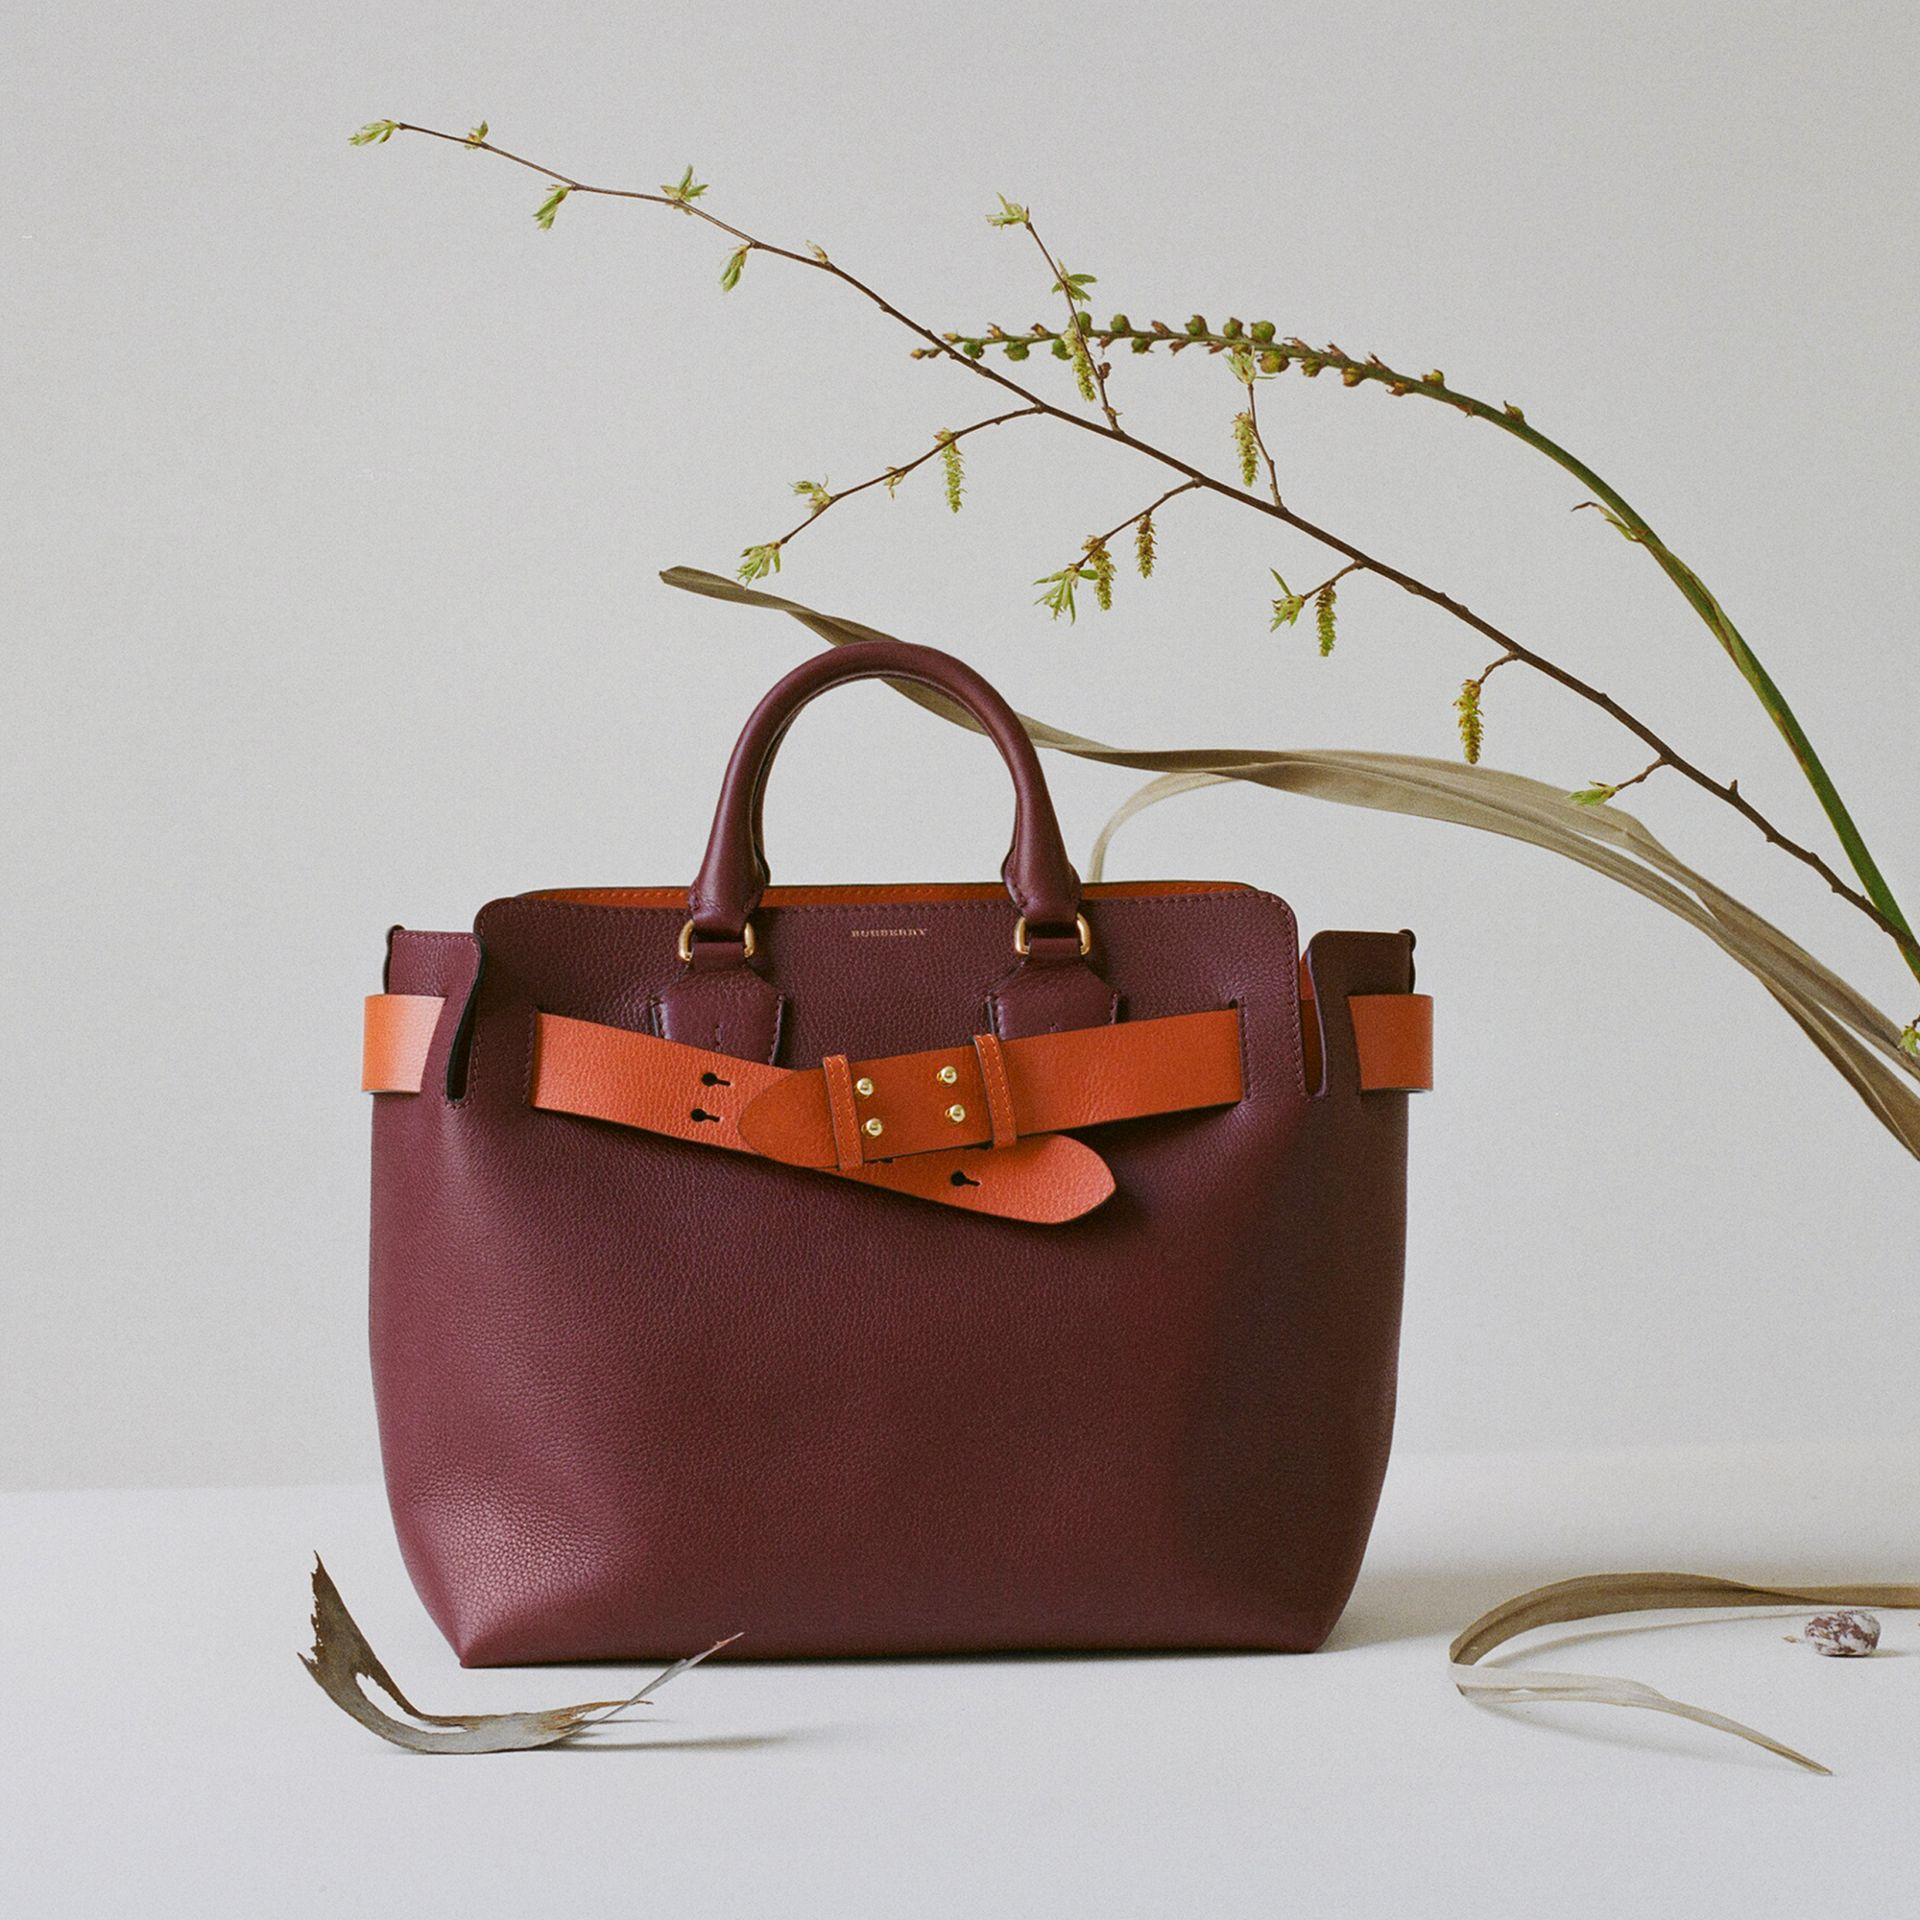 Sac The Belt moyen en cuir (Bordeaux Intense) - Femme | Burberry - photo de la galerie 1